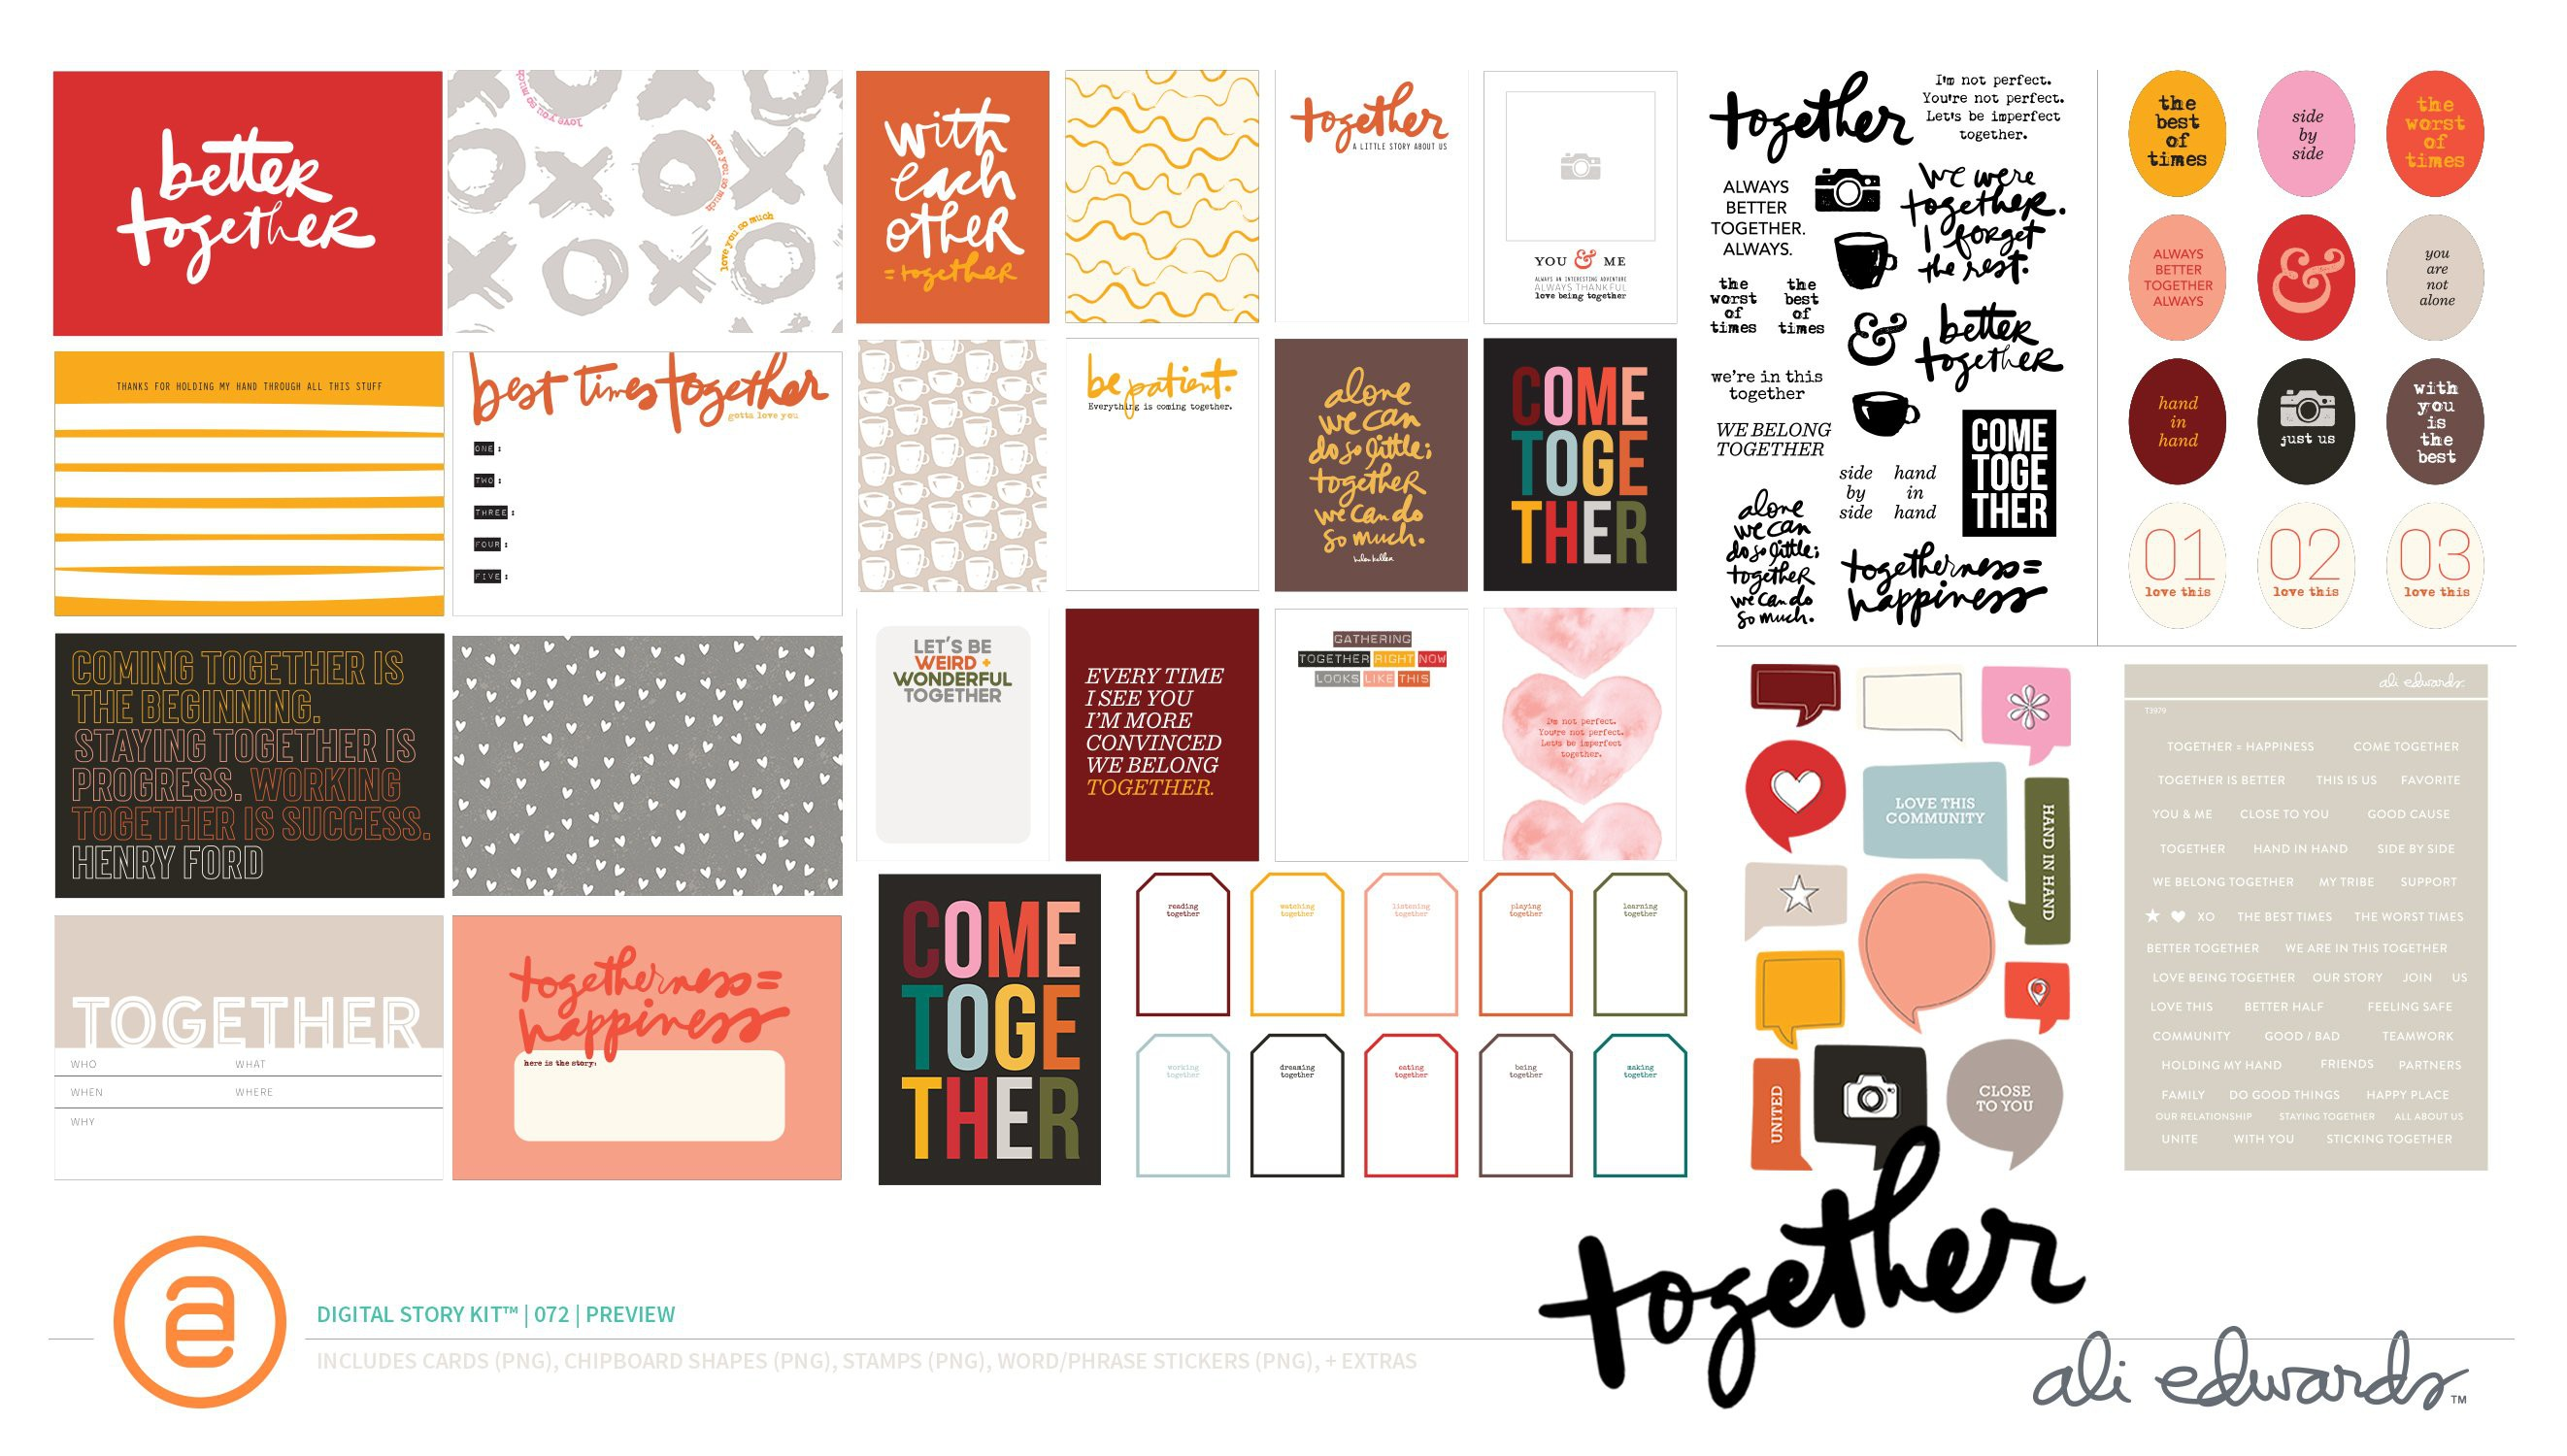 Ae togetherdigitalstorykit prev original